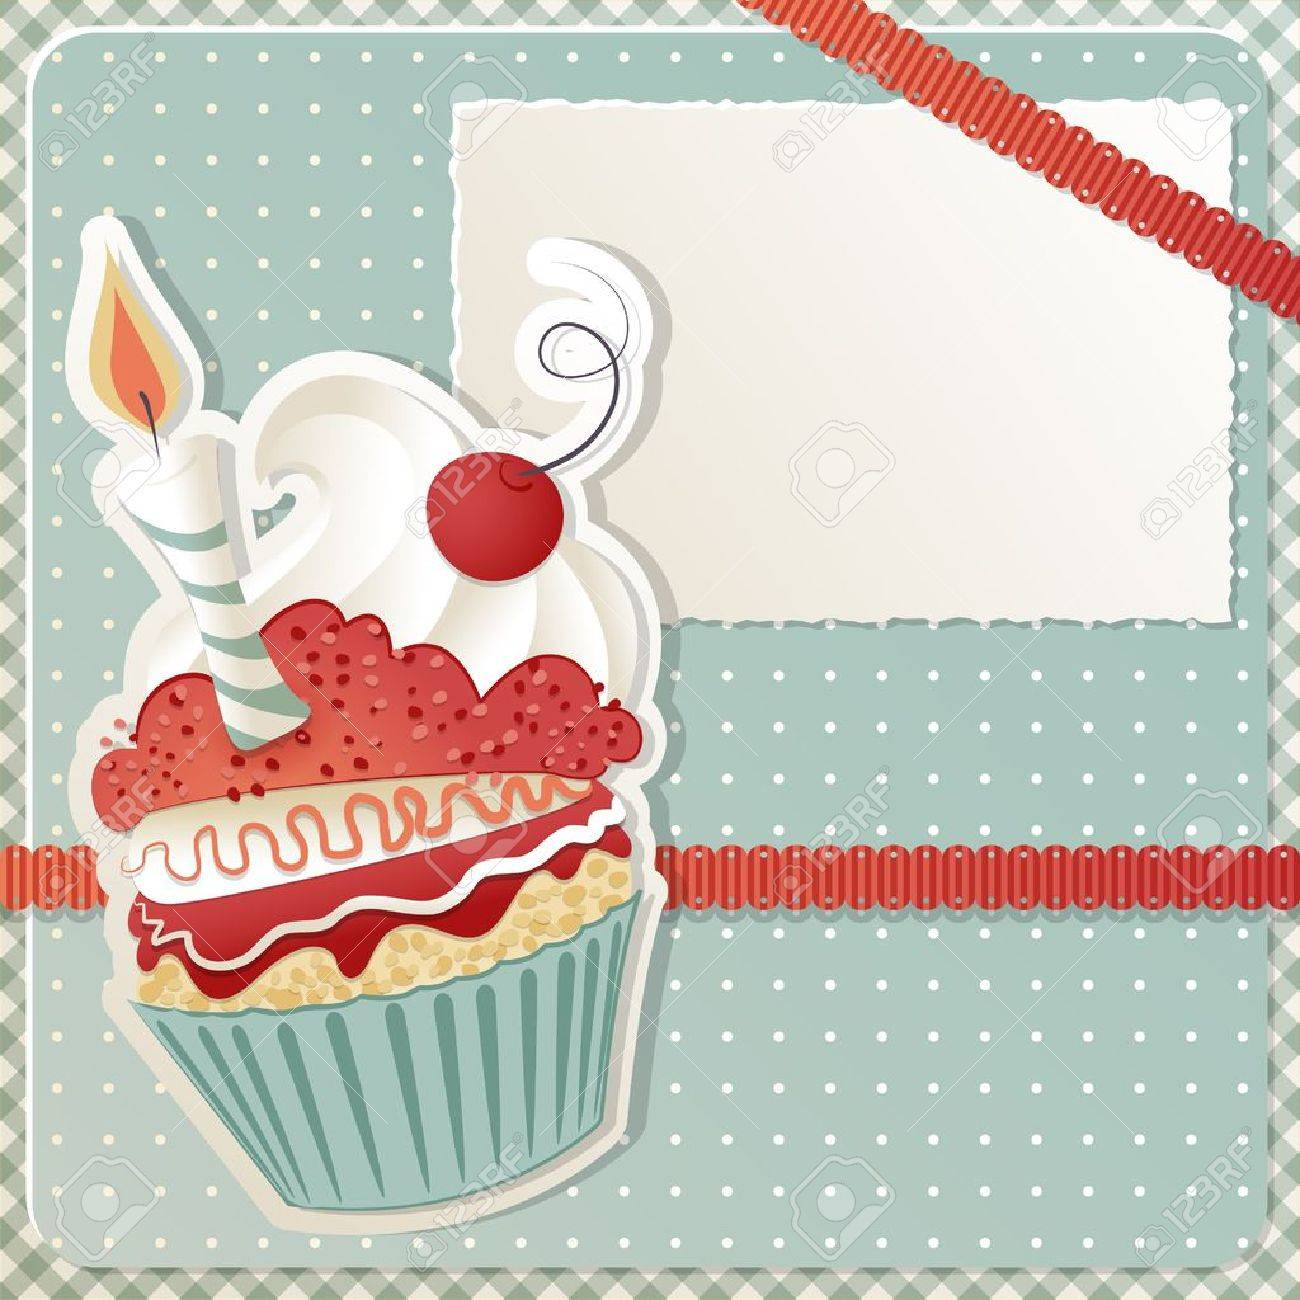 Birthday card with funny cupcake and copy space Stock Vector - 11851445